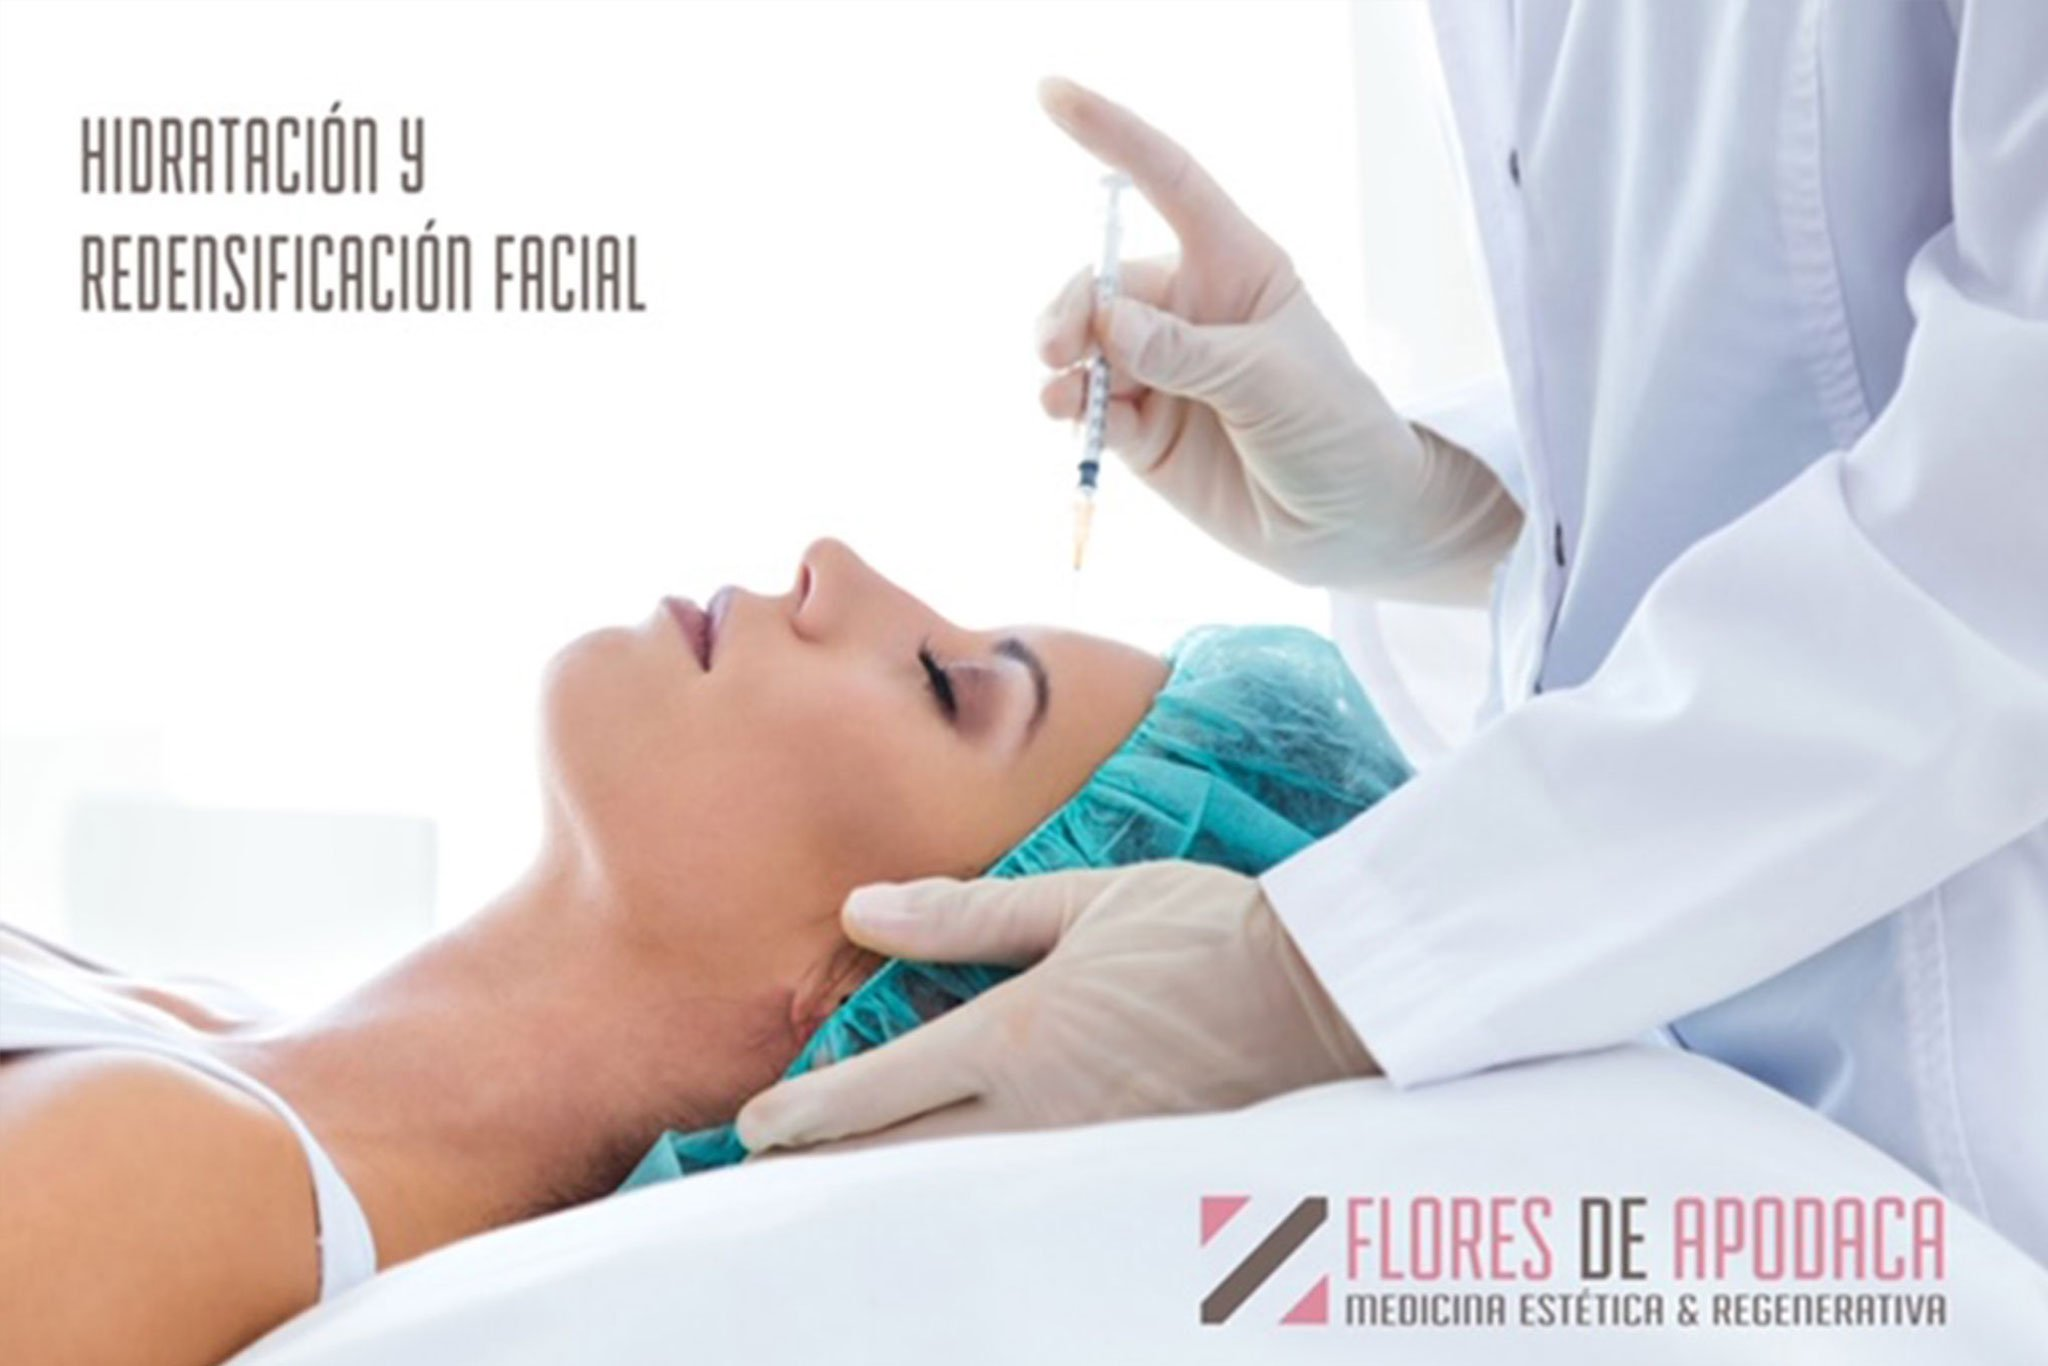 HYdration and facial redensification - Clínica Doctora Flores de Apodaca